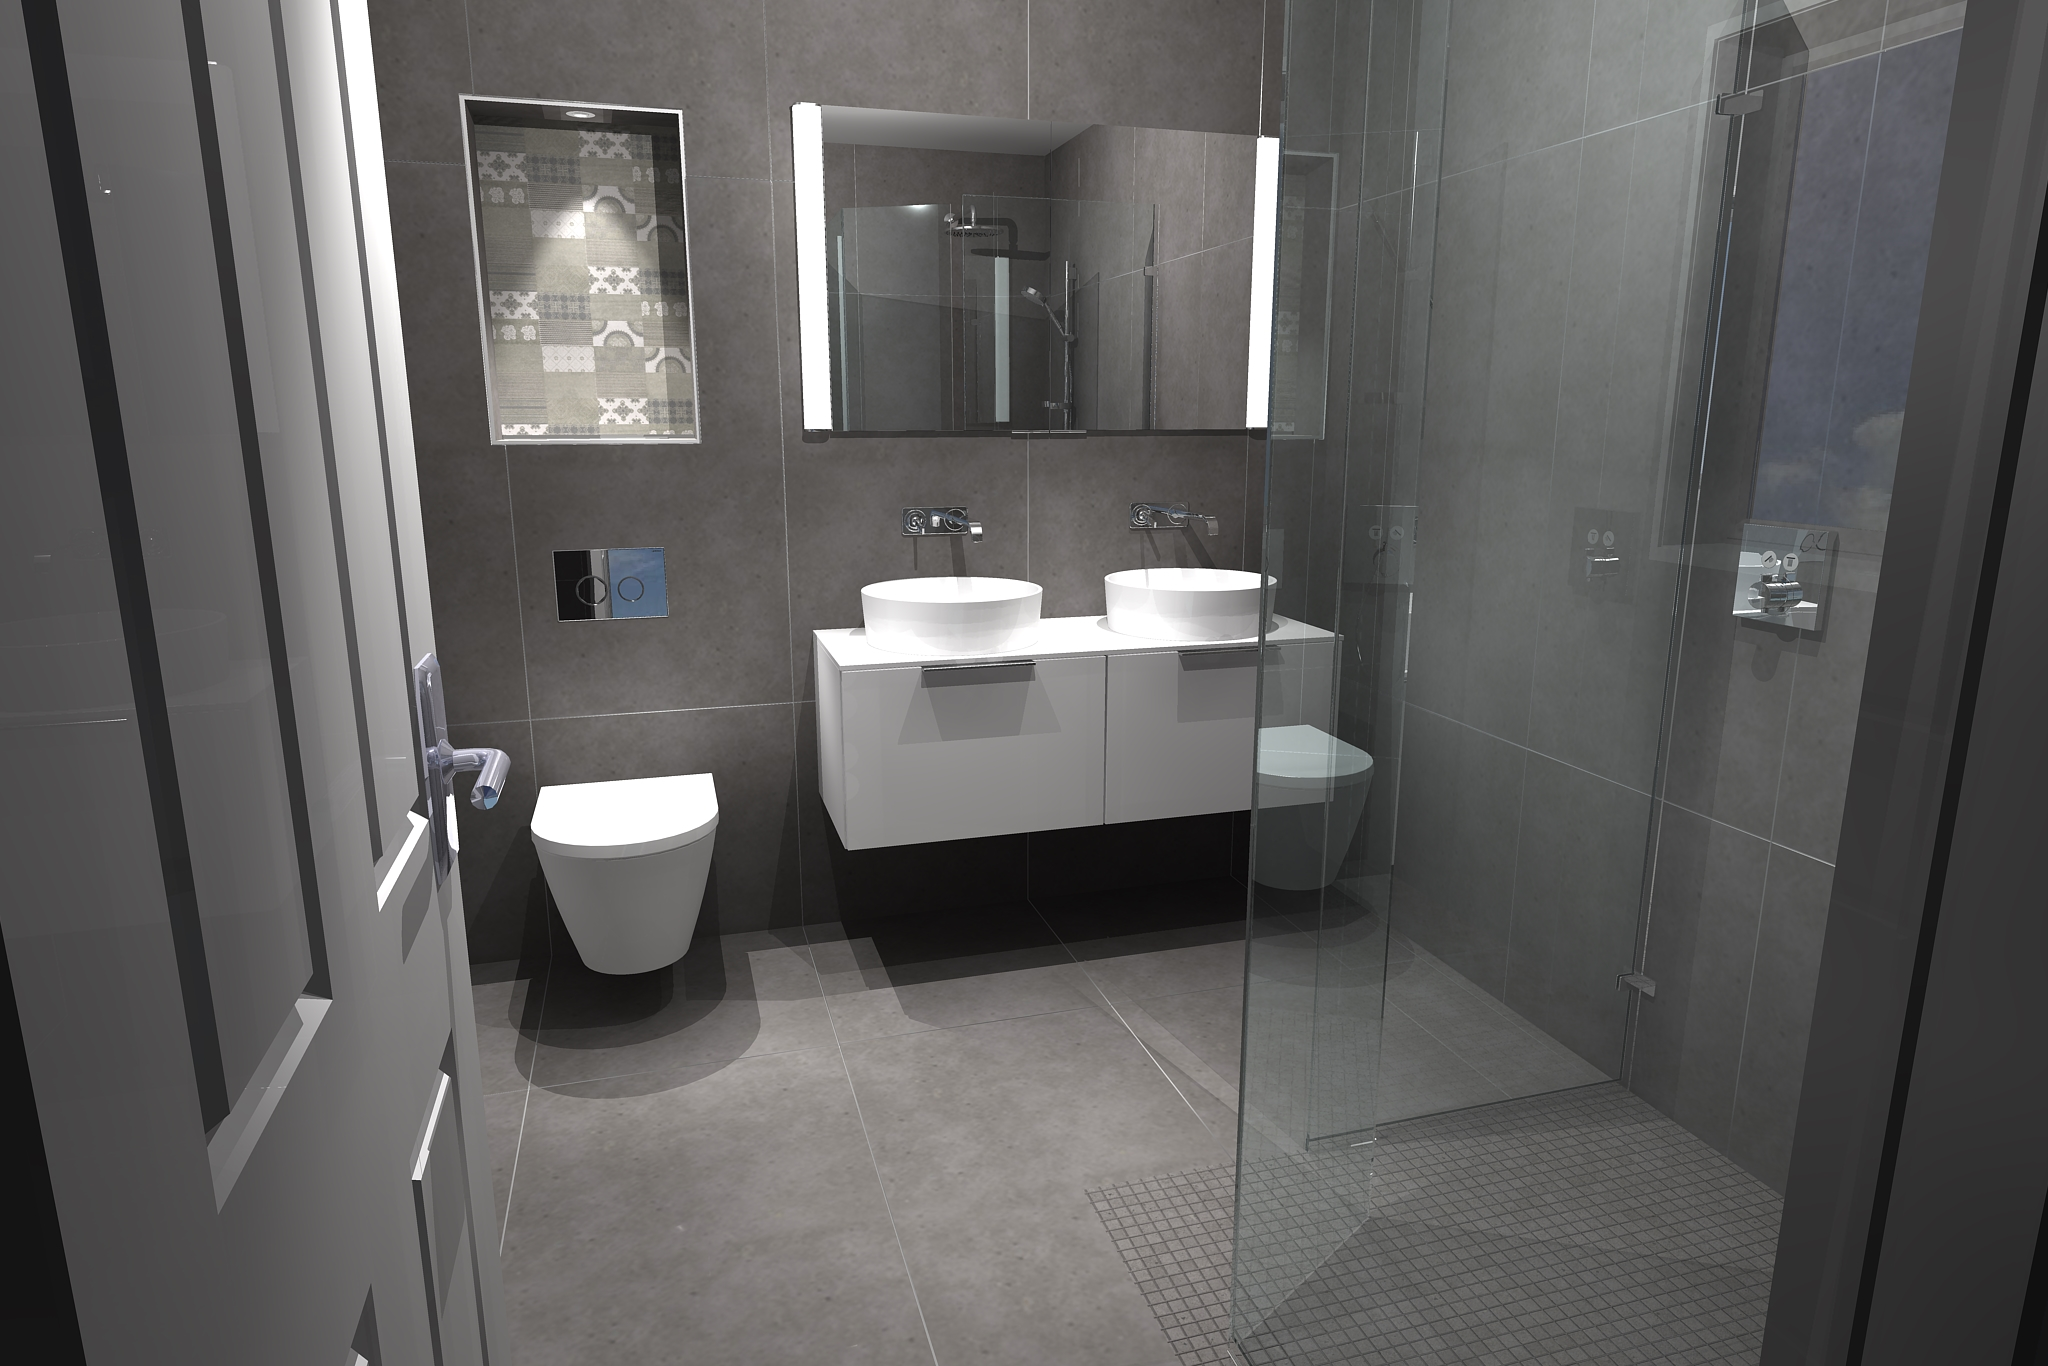 https://sykesbathrooms.com/wp-content/uploads/2015/11/KANE-MASTER-EN-SUITE-1.jpg